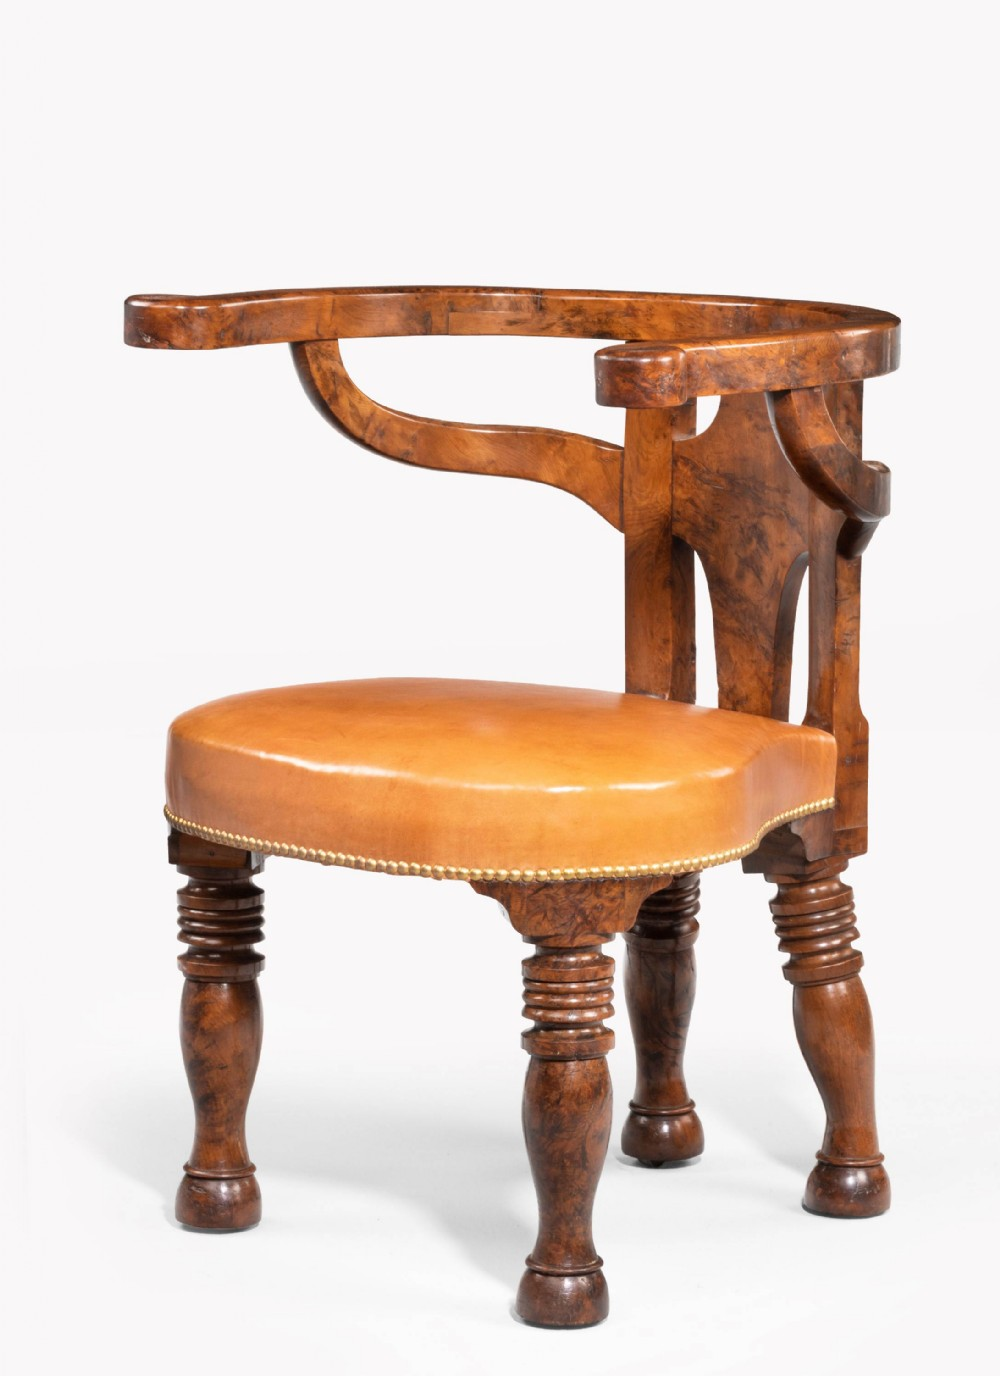 rare william iv period desk or library chair